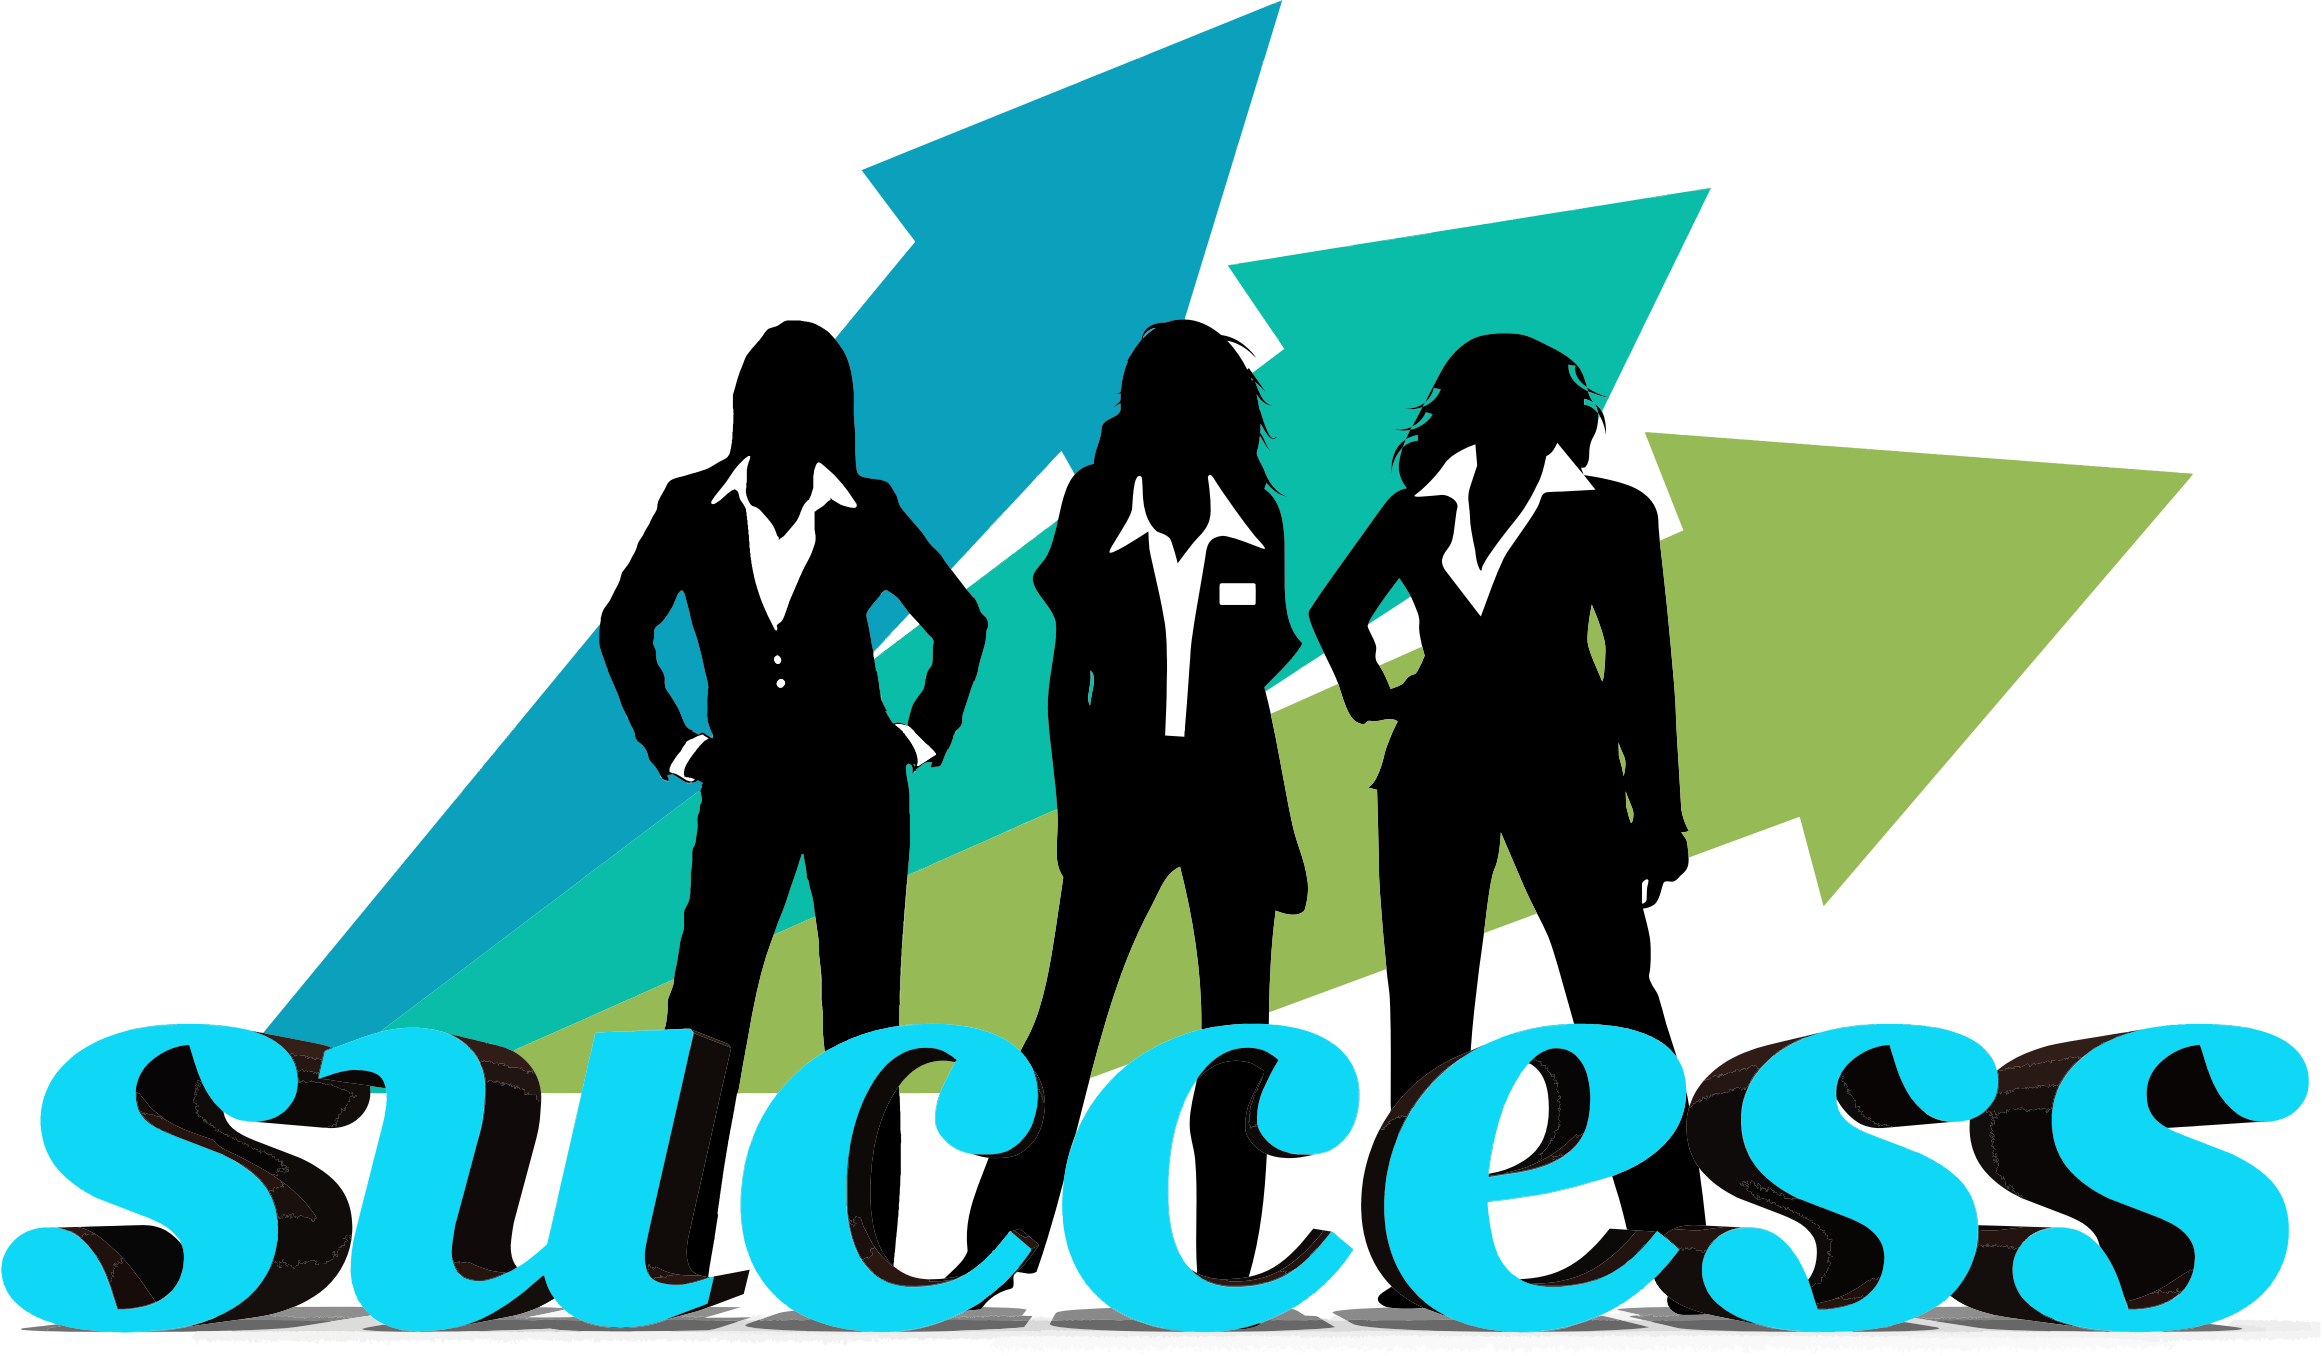 Free business success cliparts download clip art png.